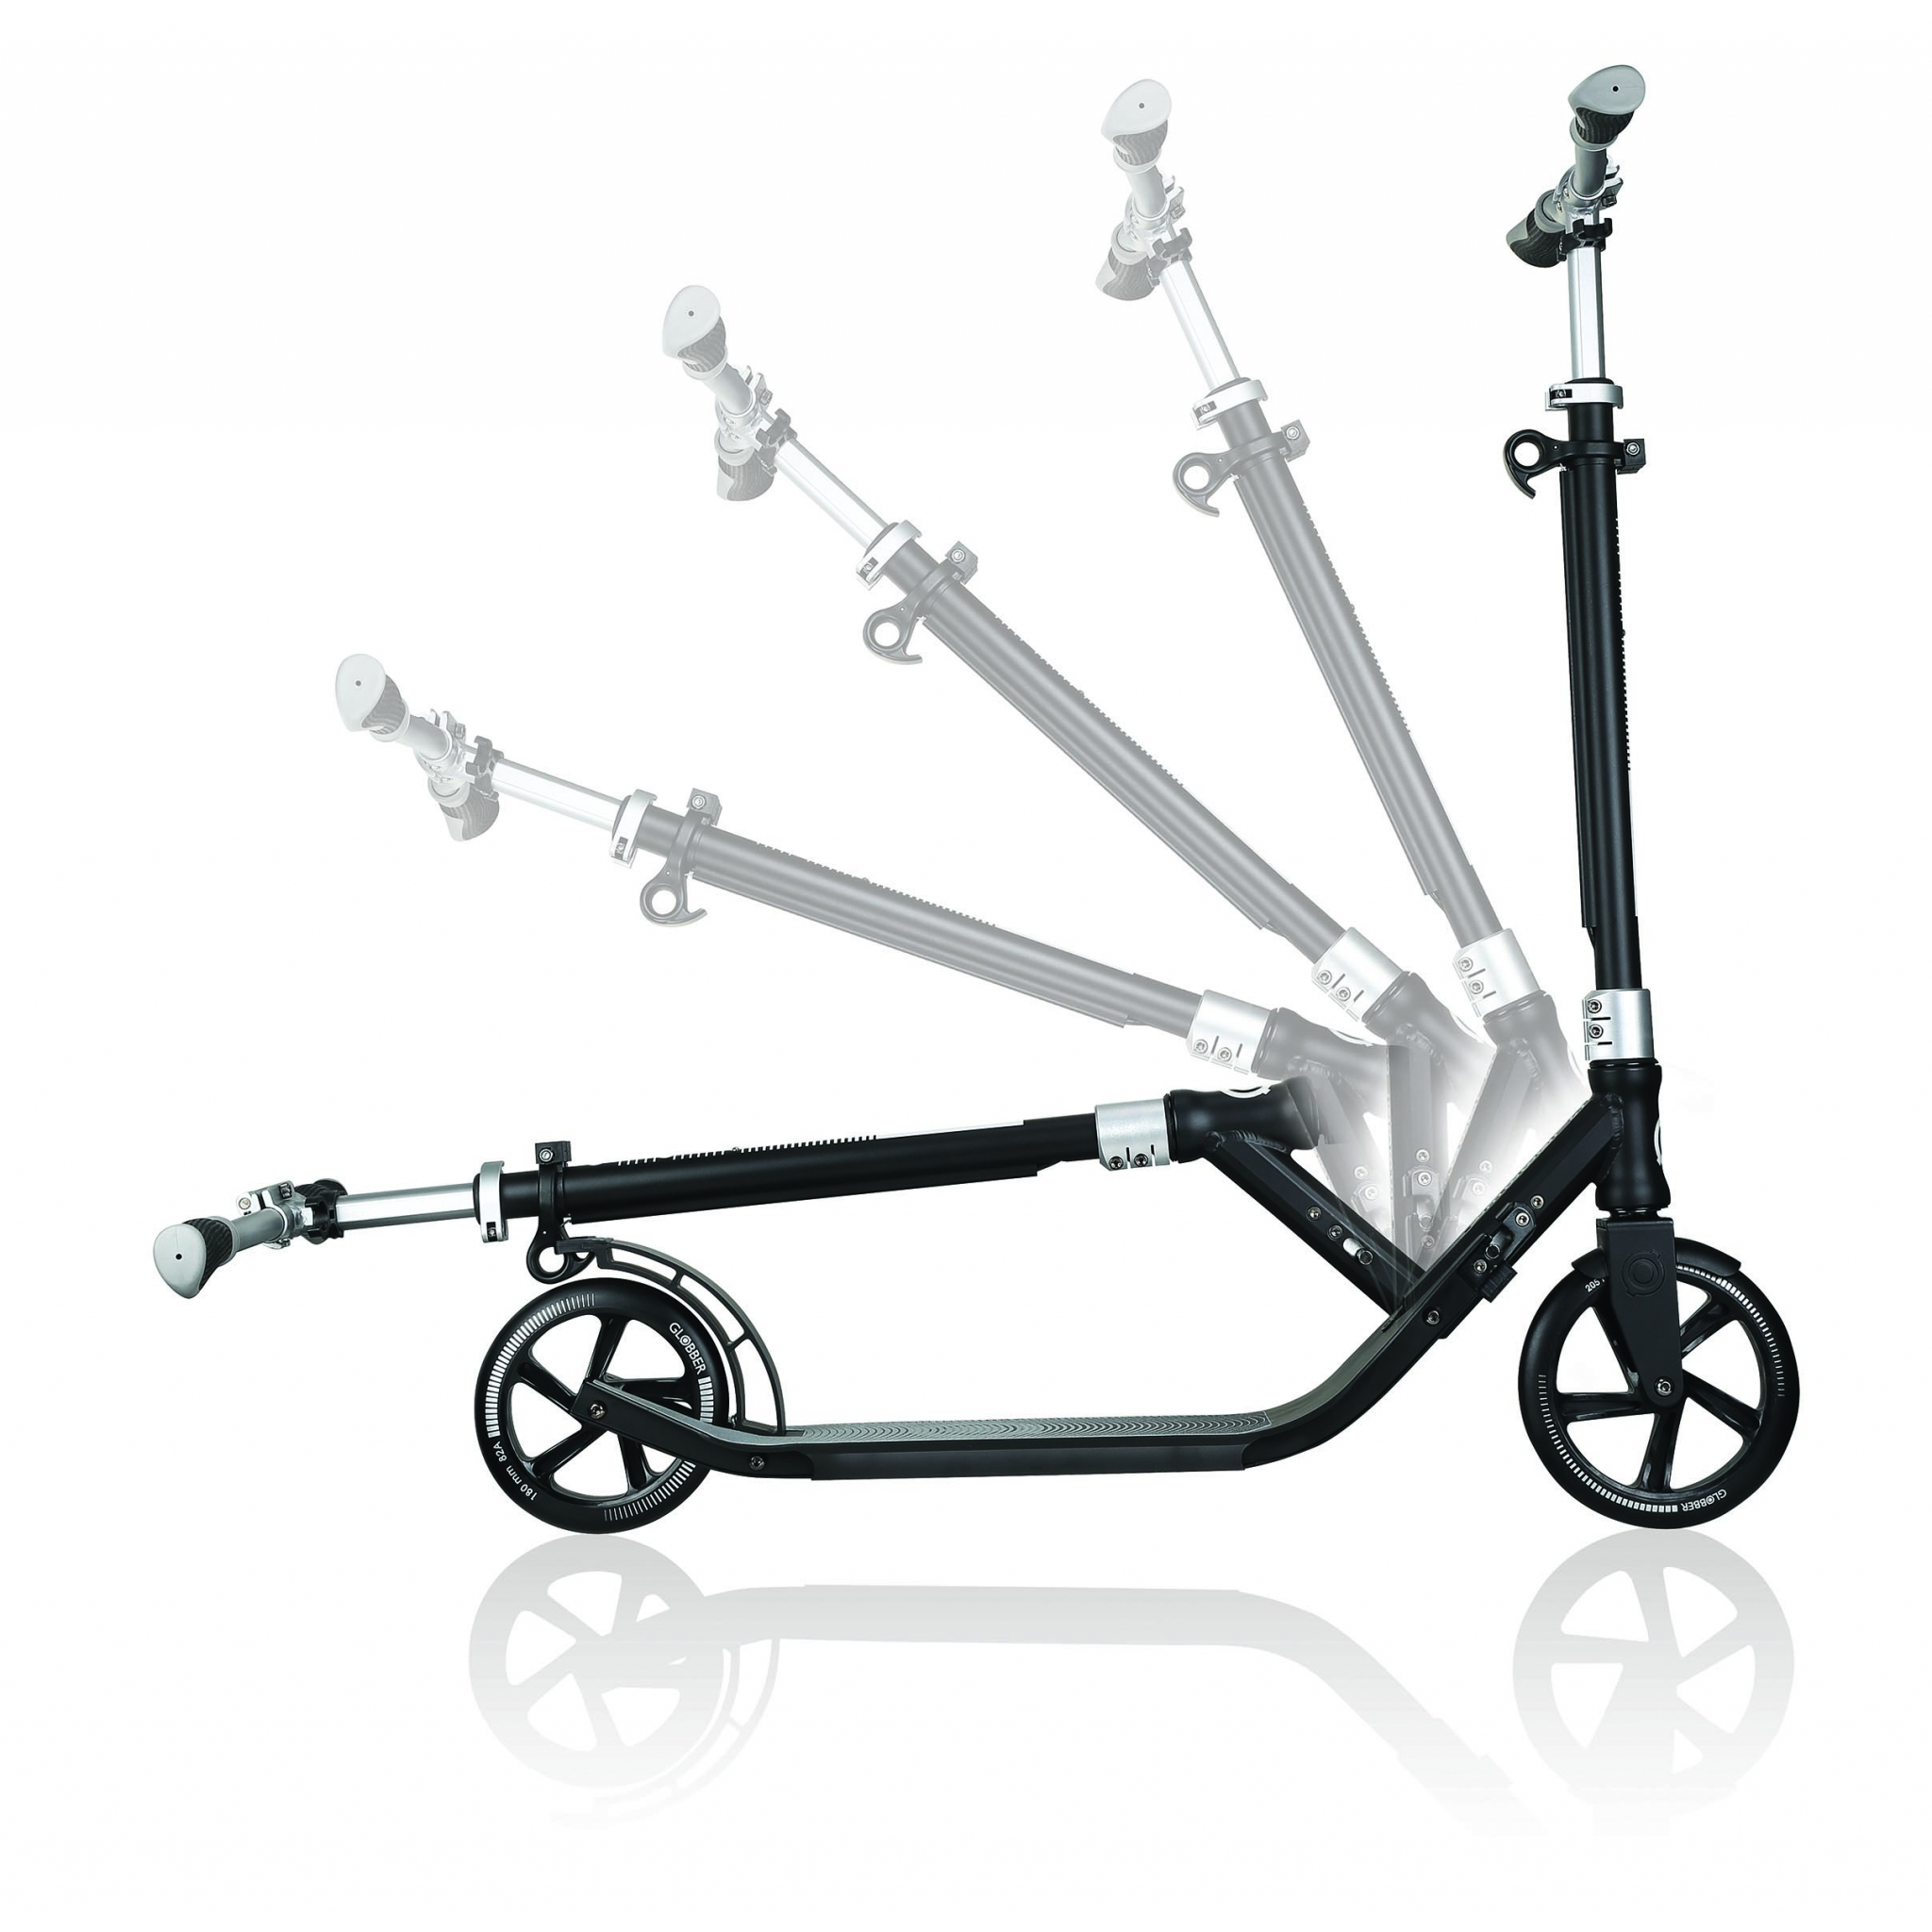 Globber-ONE-NL-205-180-DUO-2-wheel-foldable-scooter-for-adults-1-second-fold-up-scooter-lead-grey